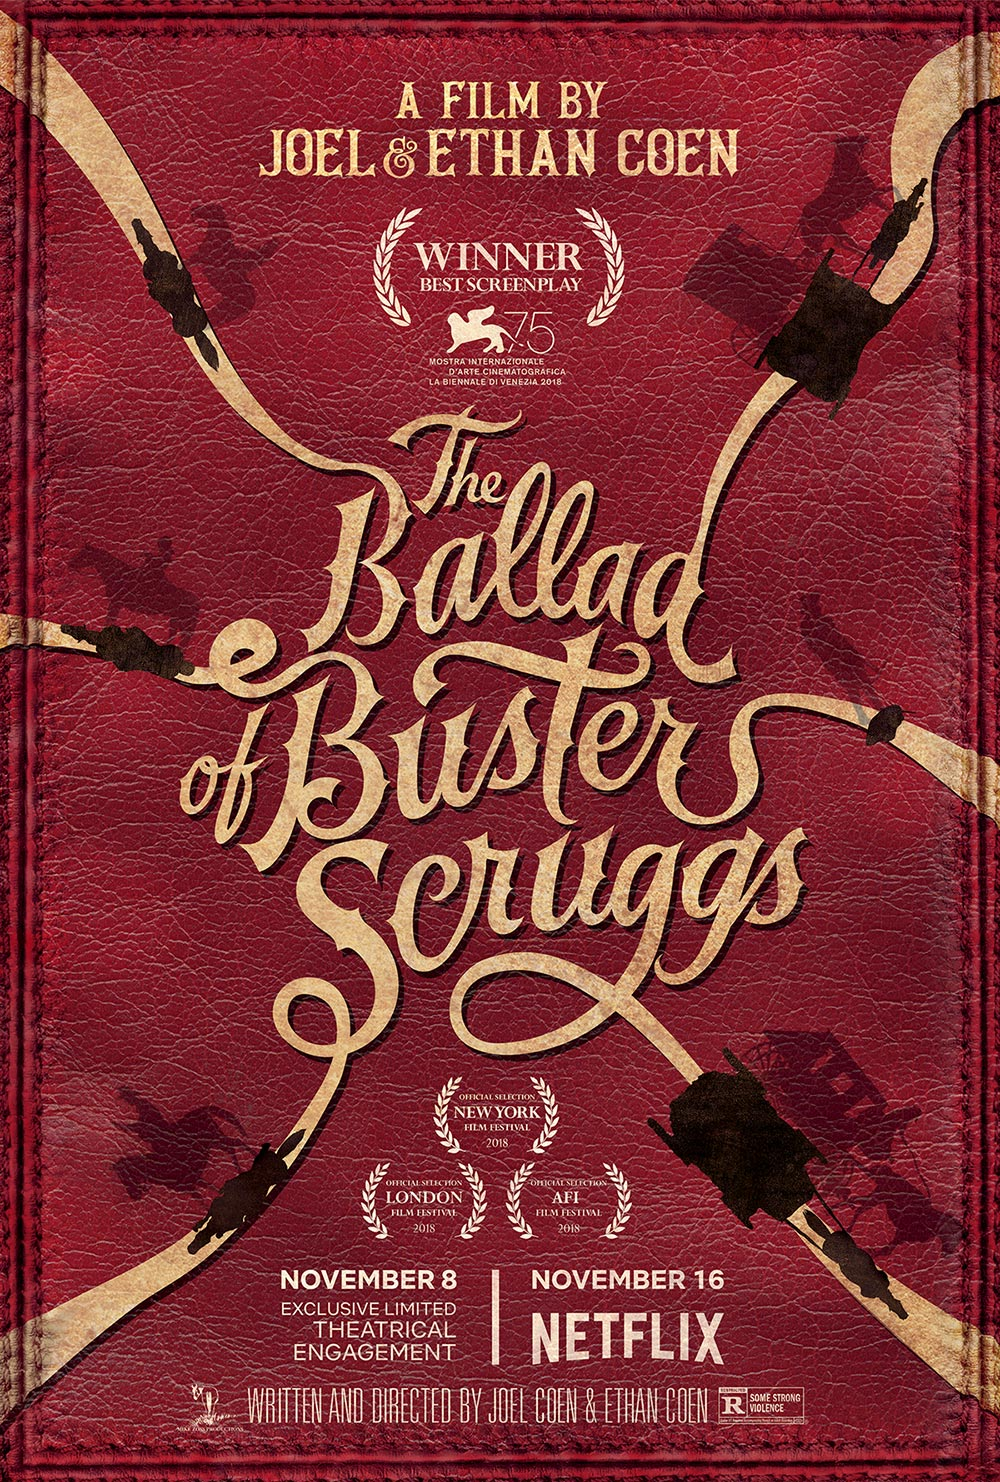 The Ballad of Buster Scruggs - Joel ed Ethan Coen